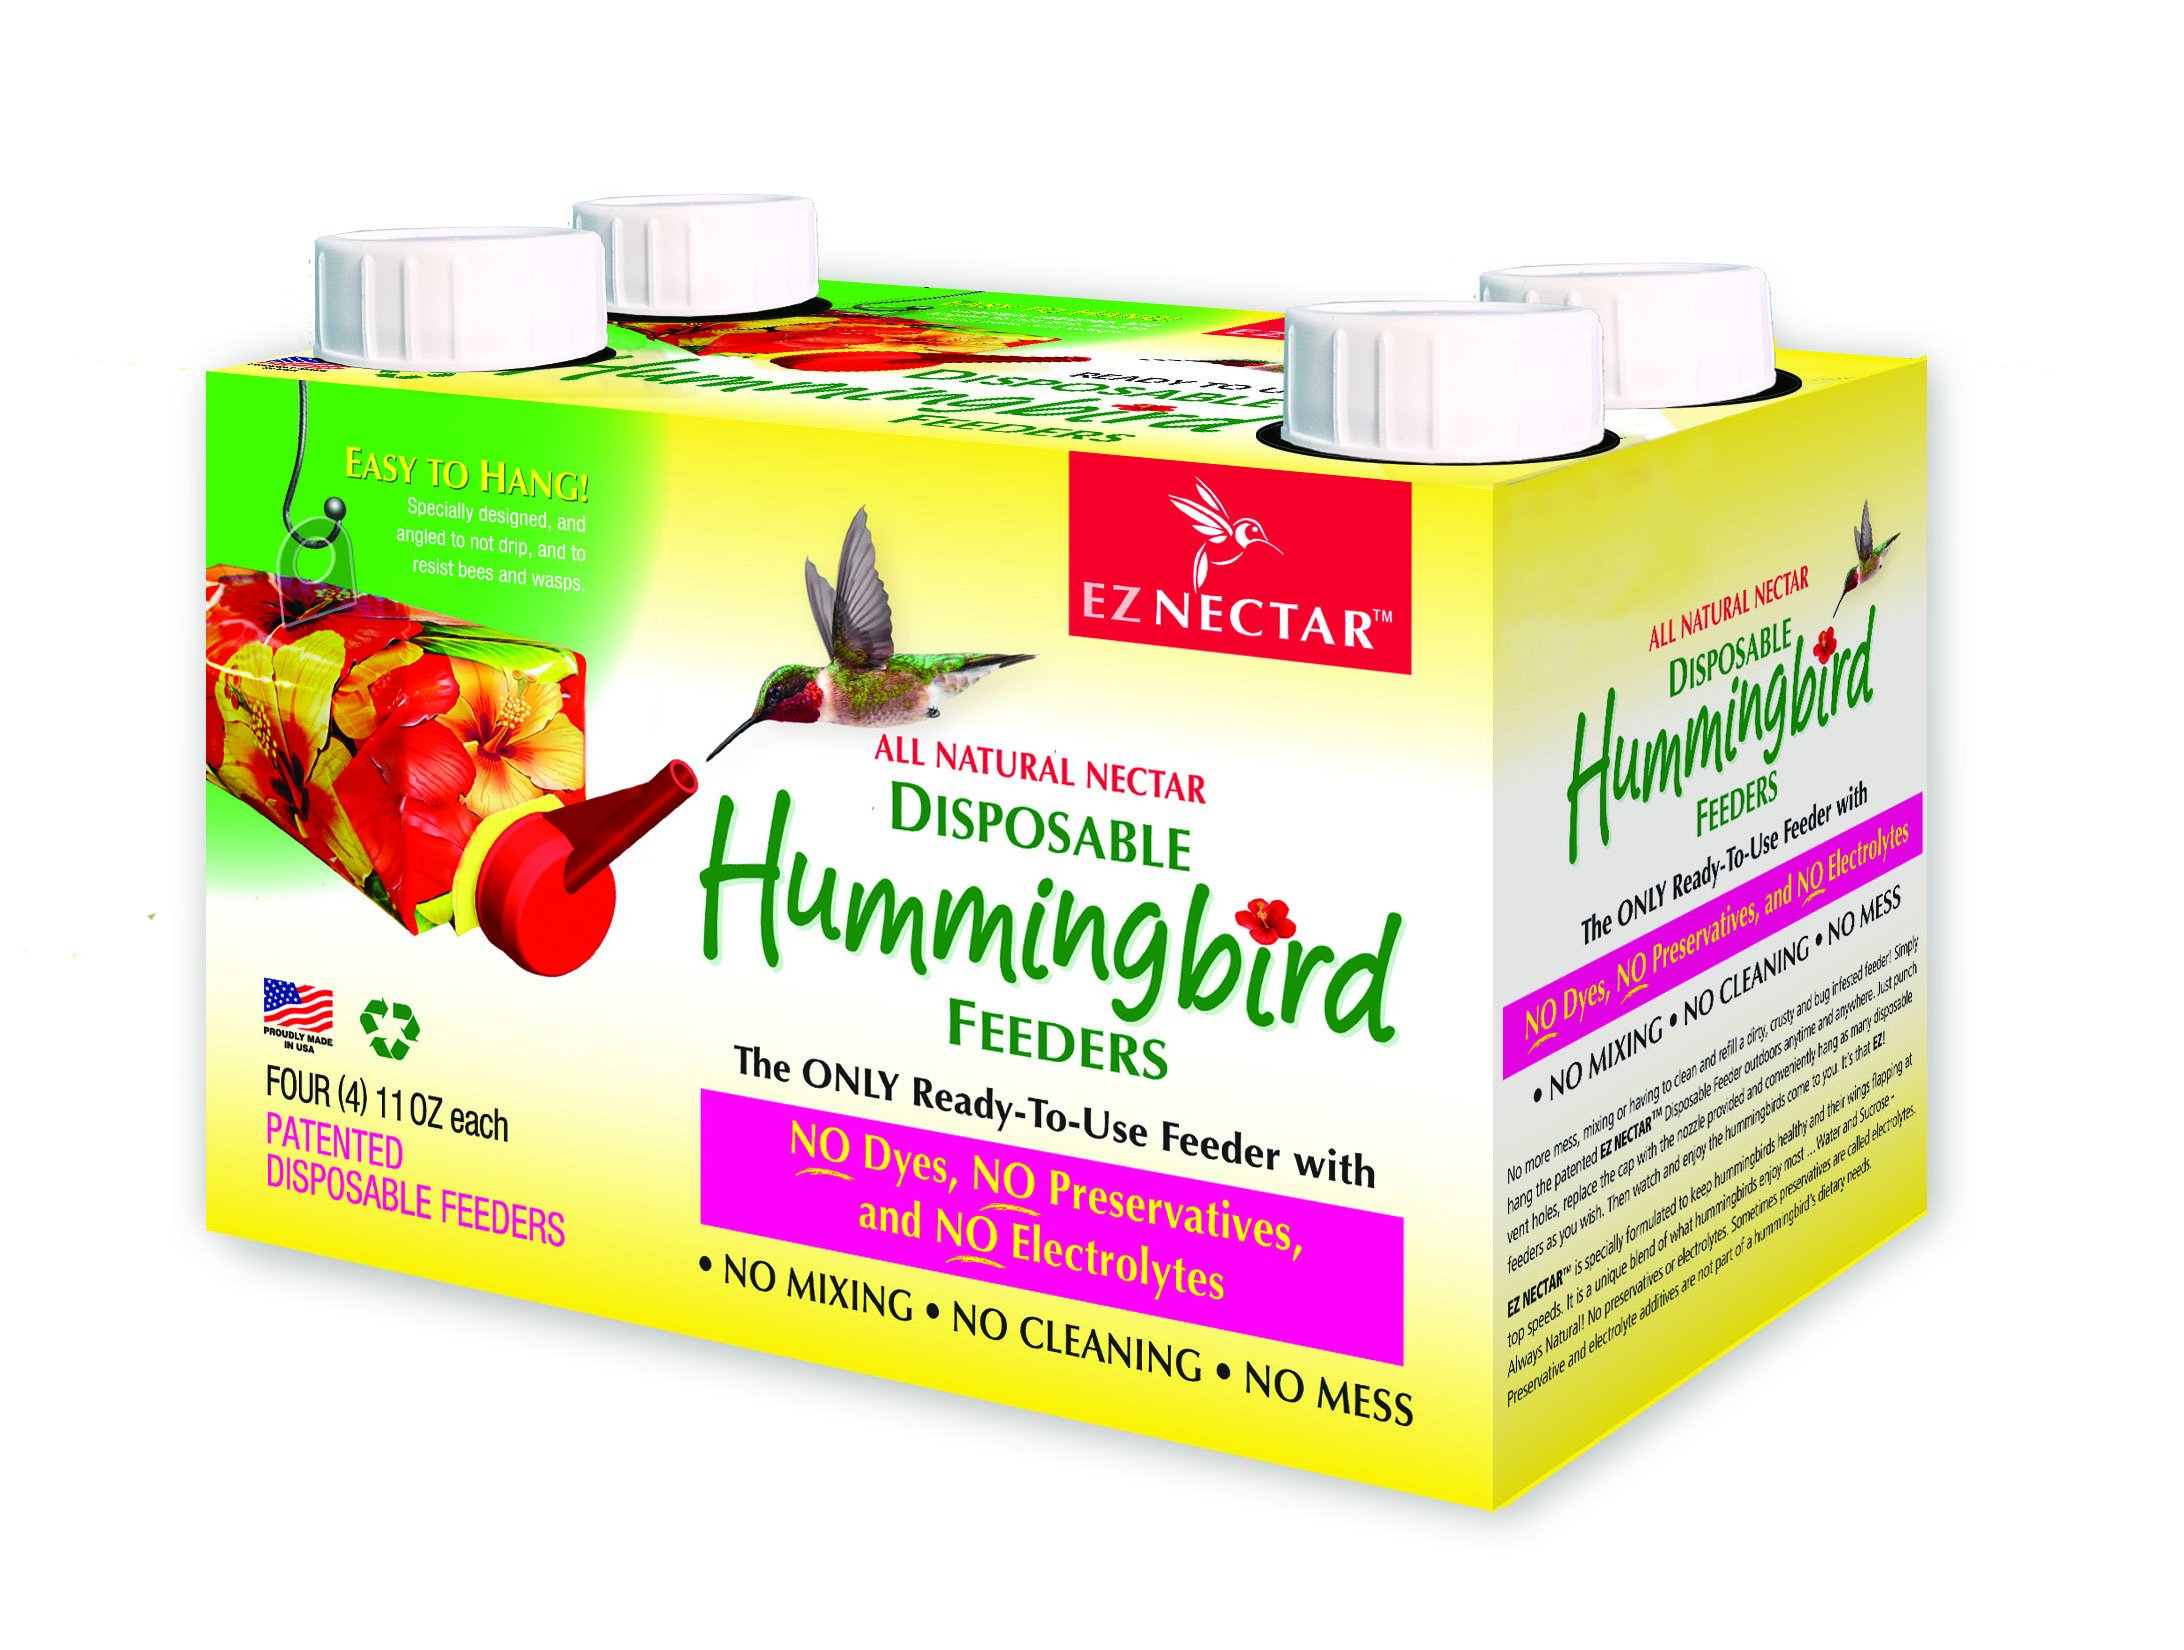 The Only Disposable/Recyclable, Ready-to-Use, Hummingbird Feeder-Prefllled w/Preservative and Dye Free''Exactly Like Flower'' Nectar. Never Clean Another Feeder. Patented. (4 Pack) 44 FL OZ TOTAL